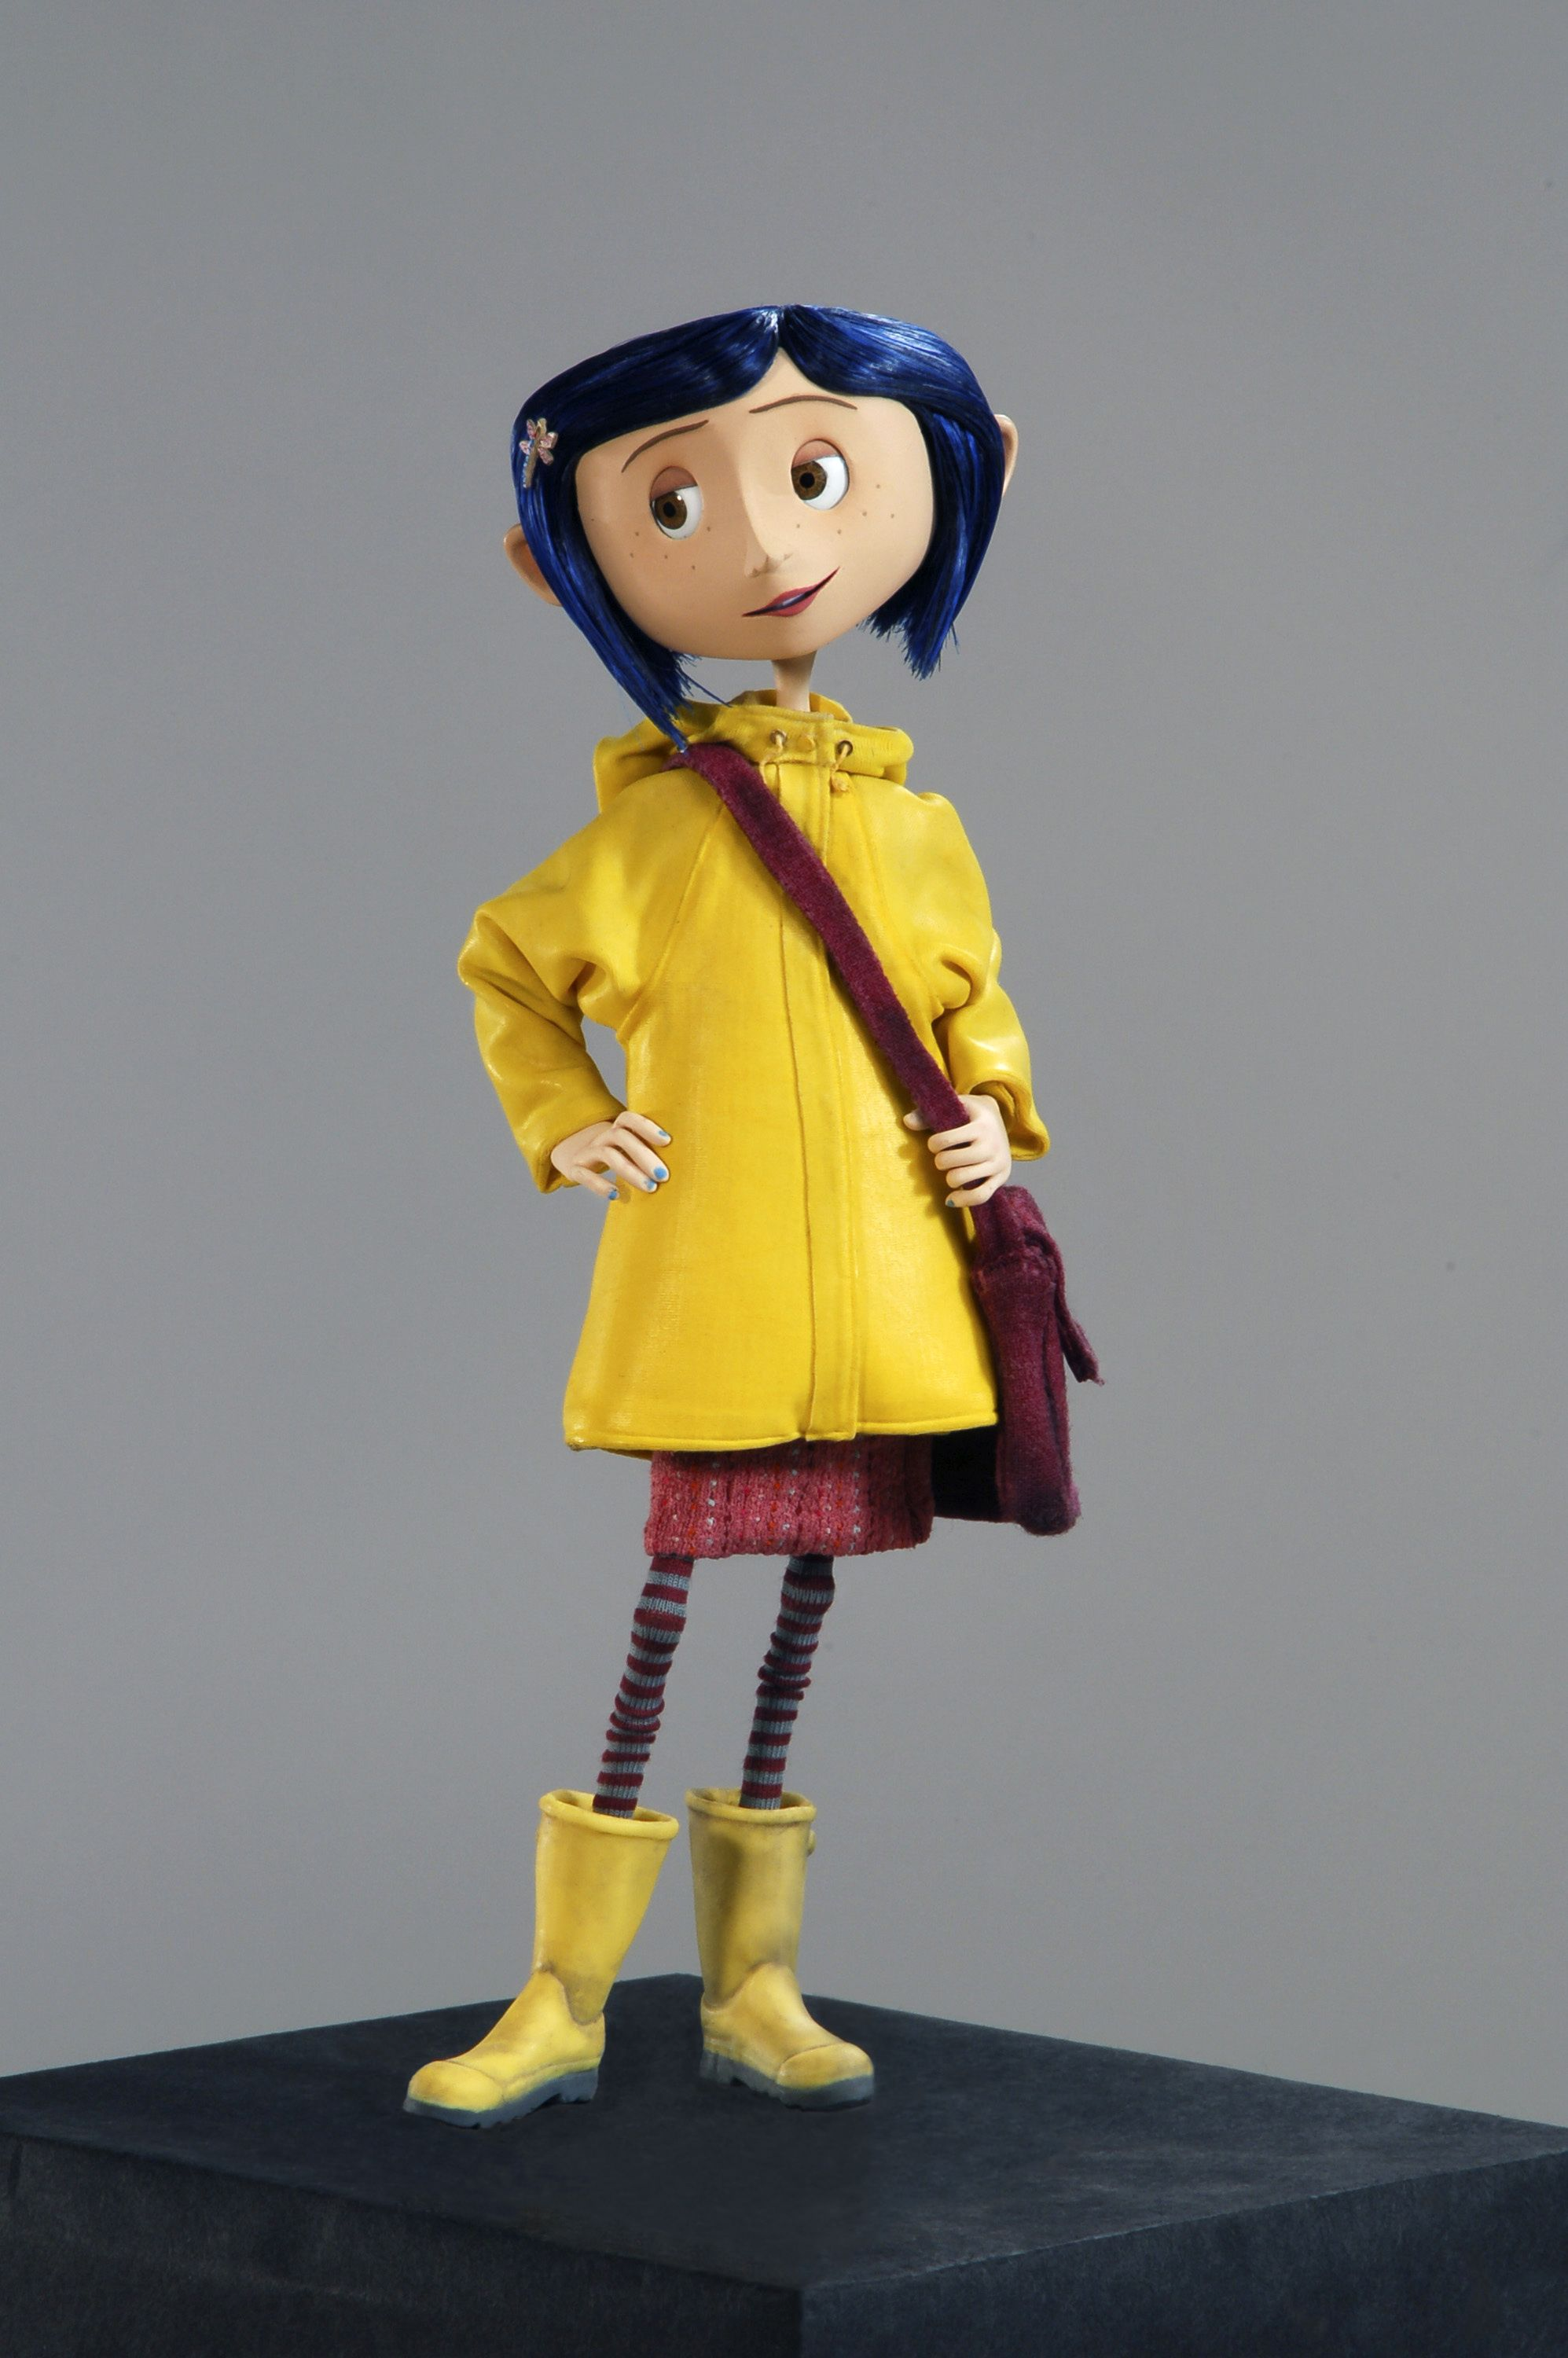 Book To Film Coraline Alsc Blog Coraline Art Coraline Movie Coraline Costume